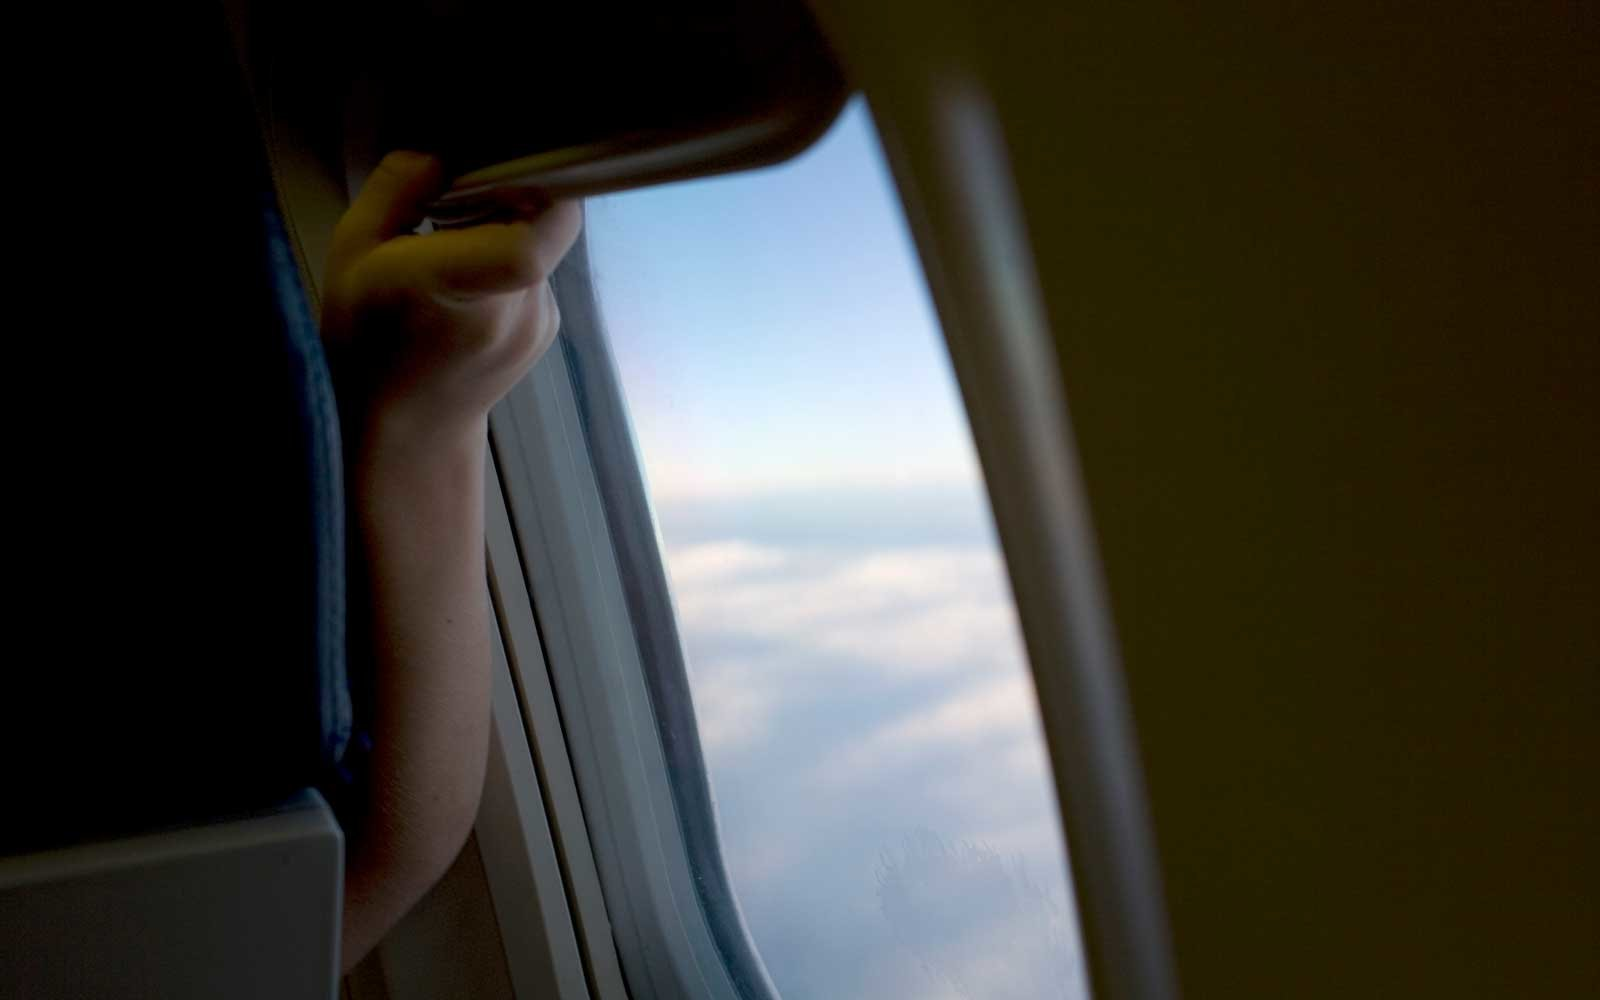 Watch two grown men continuously open and close window shade in ridiculous airplane fight